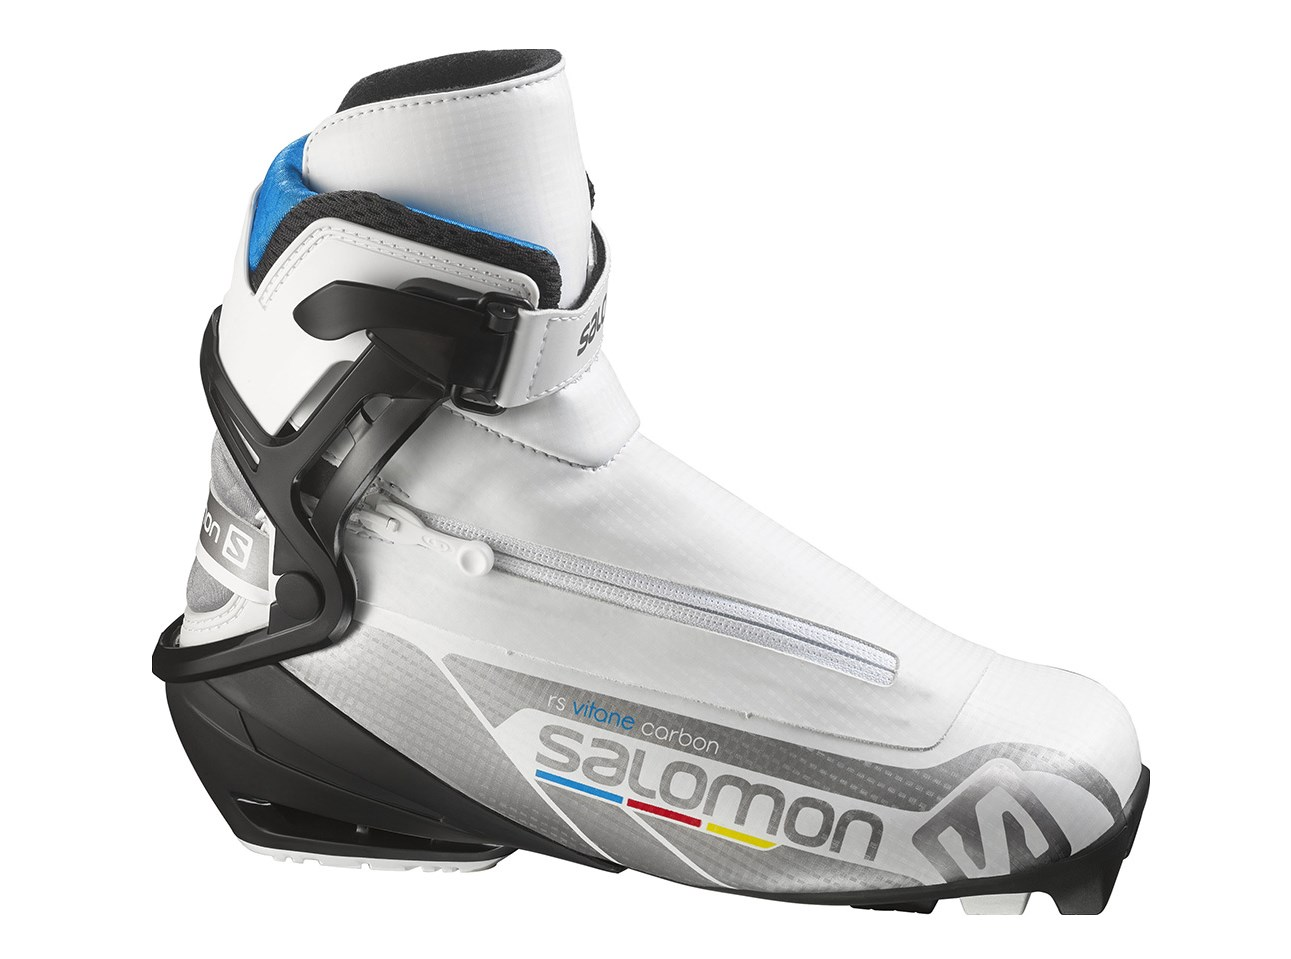 Ботинки лыжные SALOMON RS Vitane Carbon (2016)